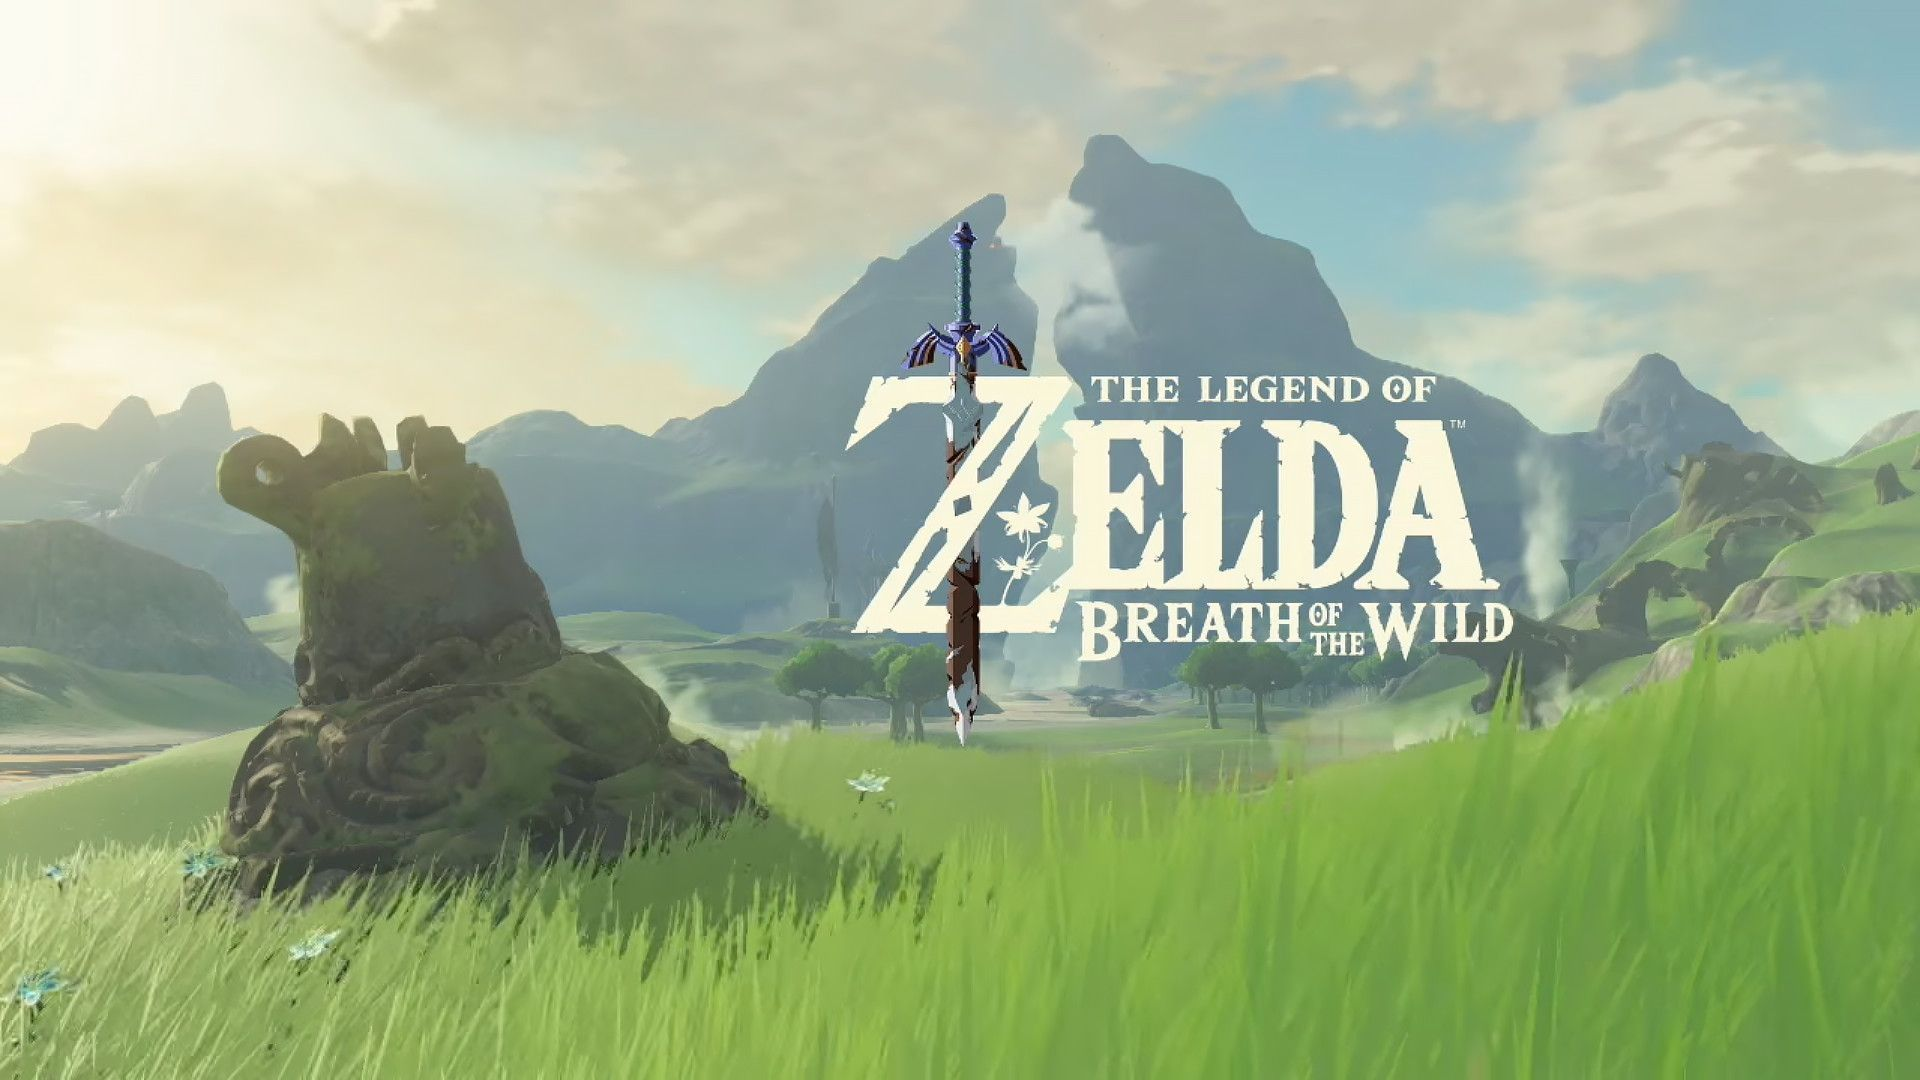 Legend of Zelda Breath of the Wild,The Legend of Zelda Breath of the Wild 2